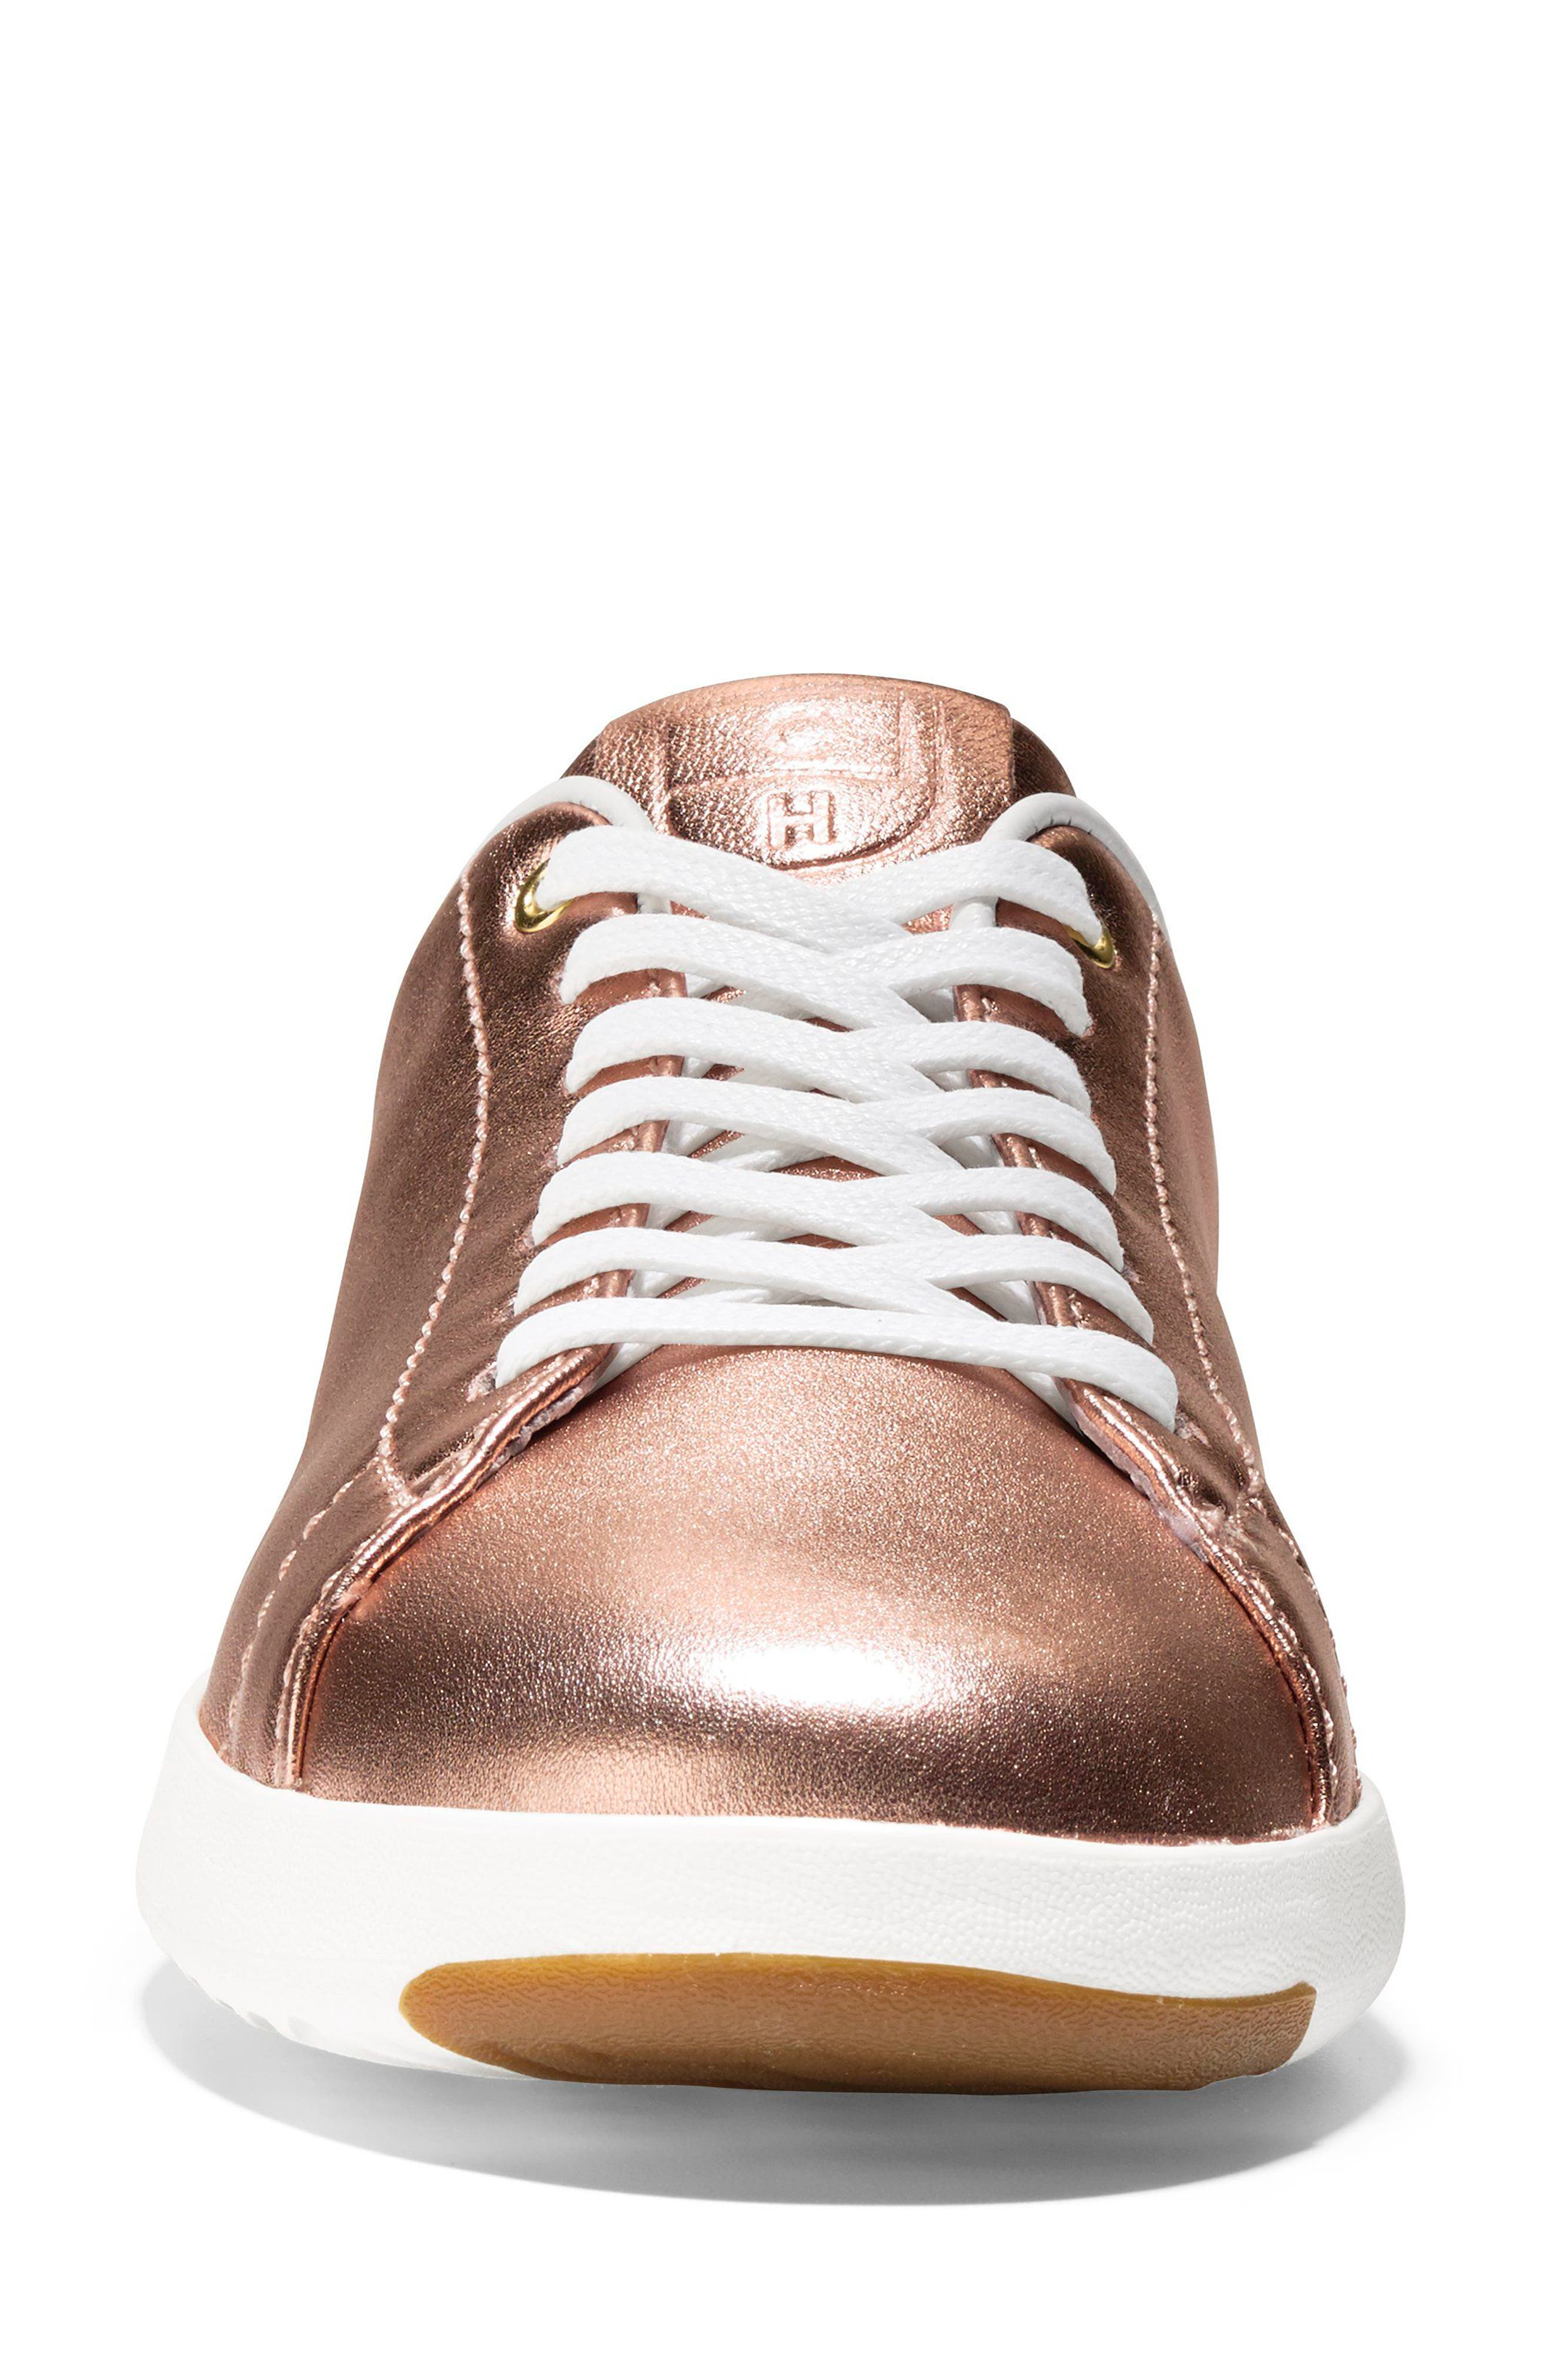 GrandPro Tennis Shoe,                             Alternate thumbnail 4, color,                             ROSE GOLD LEATHER